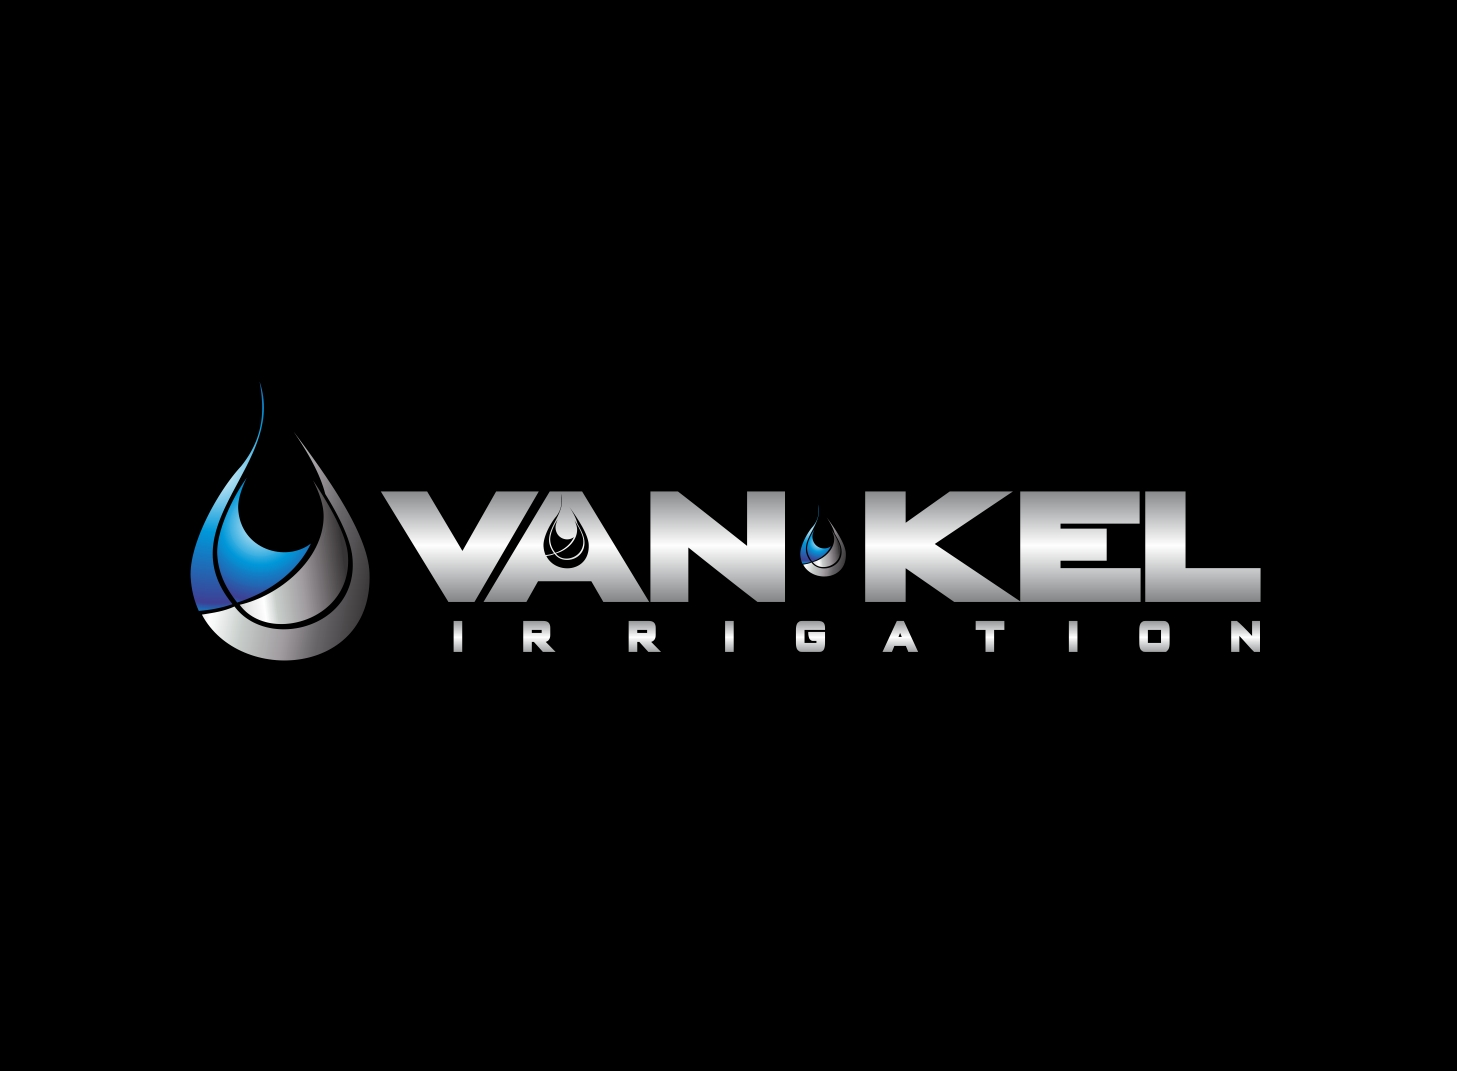 Logo Design by Zdravko Krulj - Entry No. 87 in the Logo Design Contest Van-Kel Irrigation Logo Design.